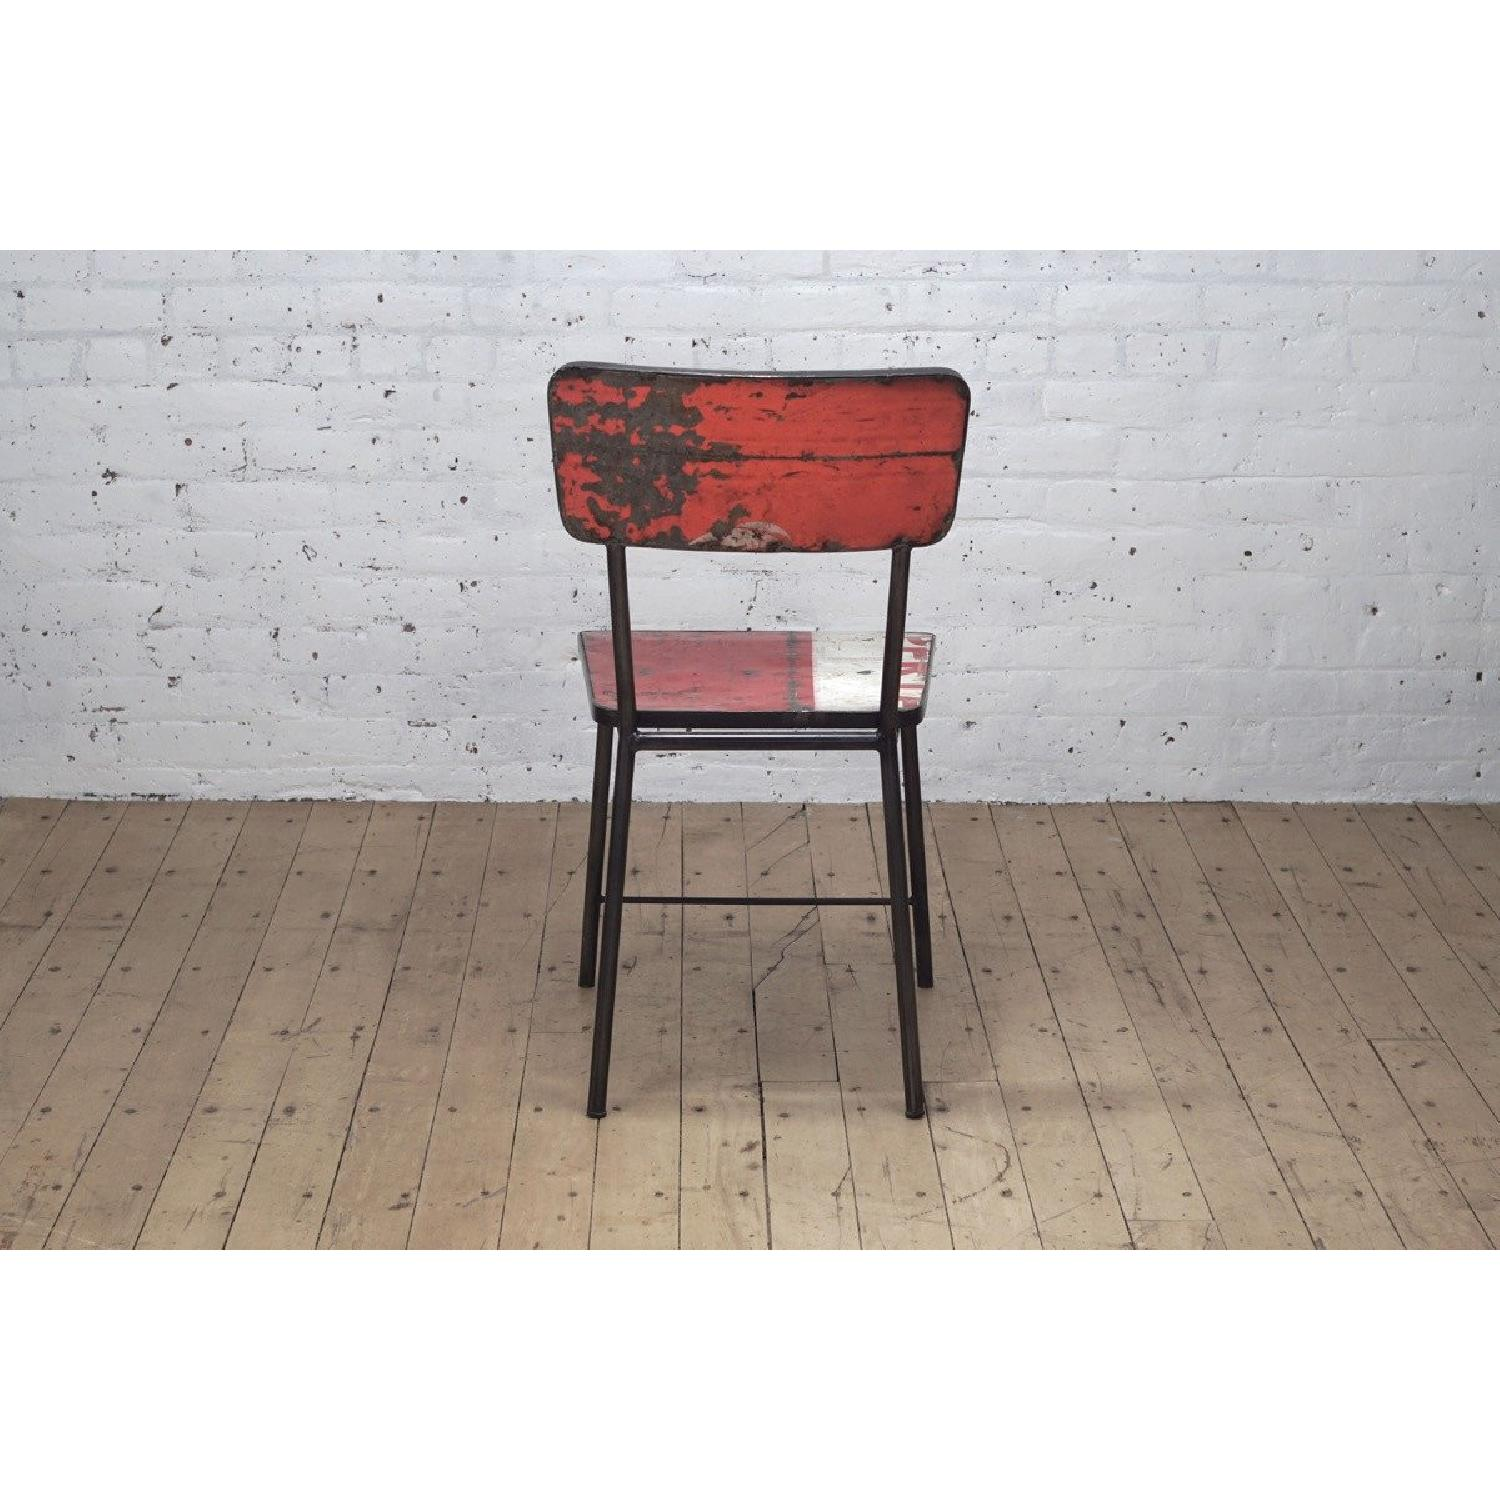 From The Source Pele Recycled Oil Drums Dining Chairs - image-6